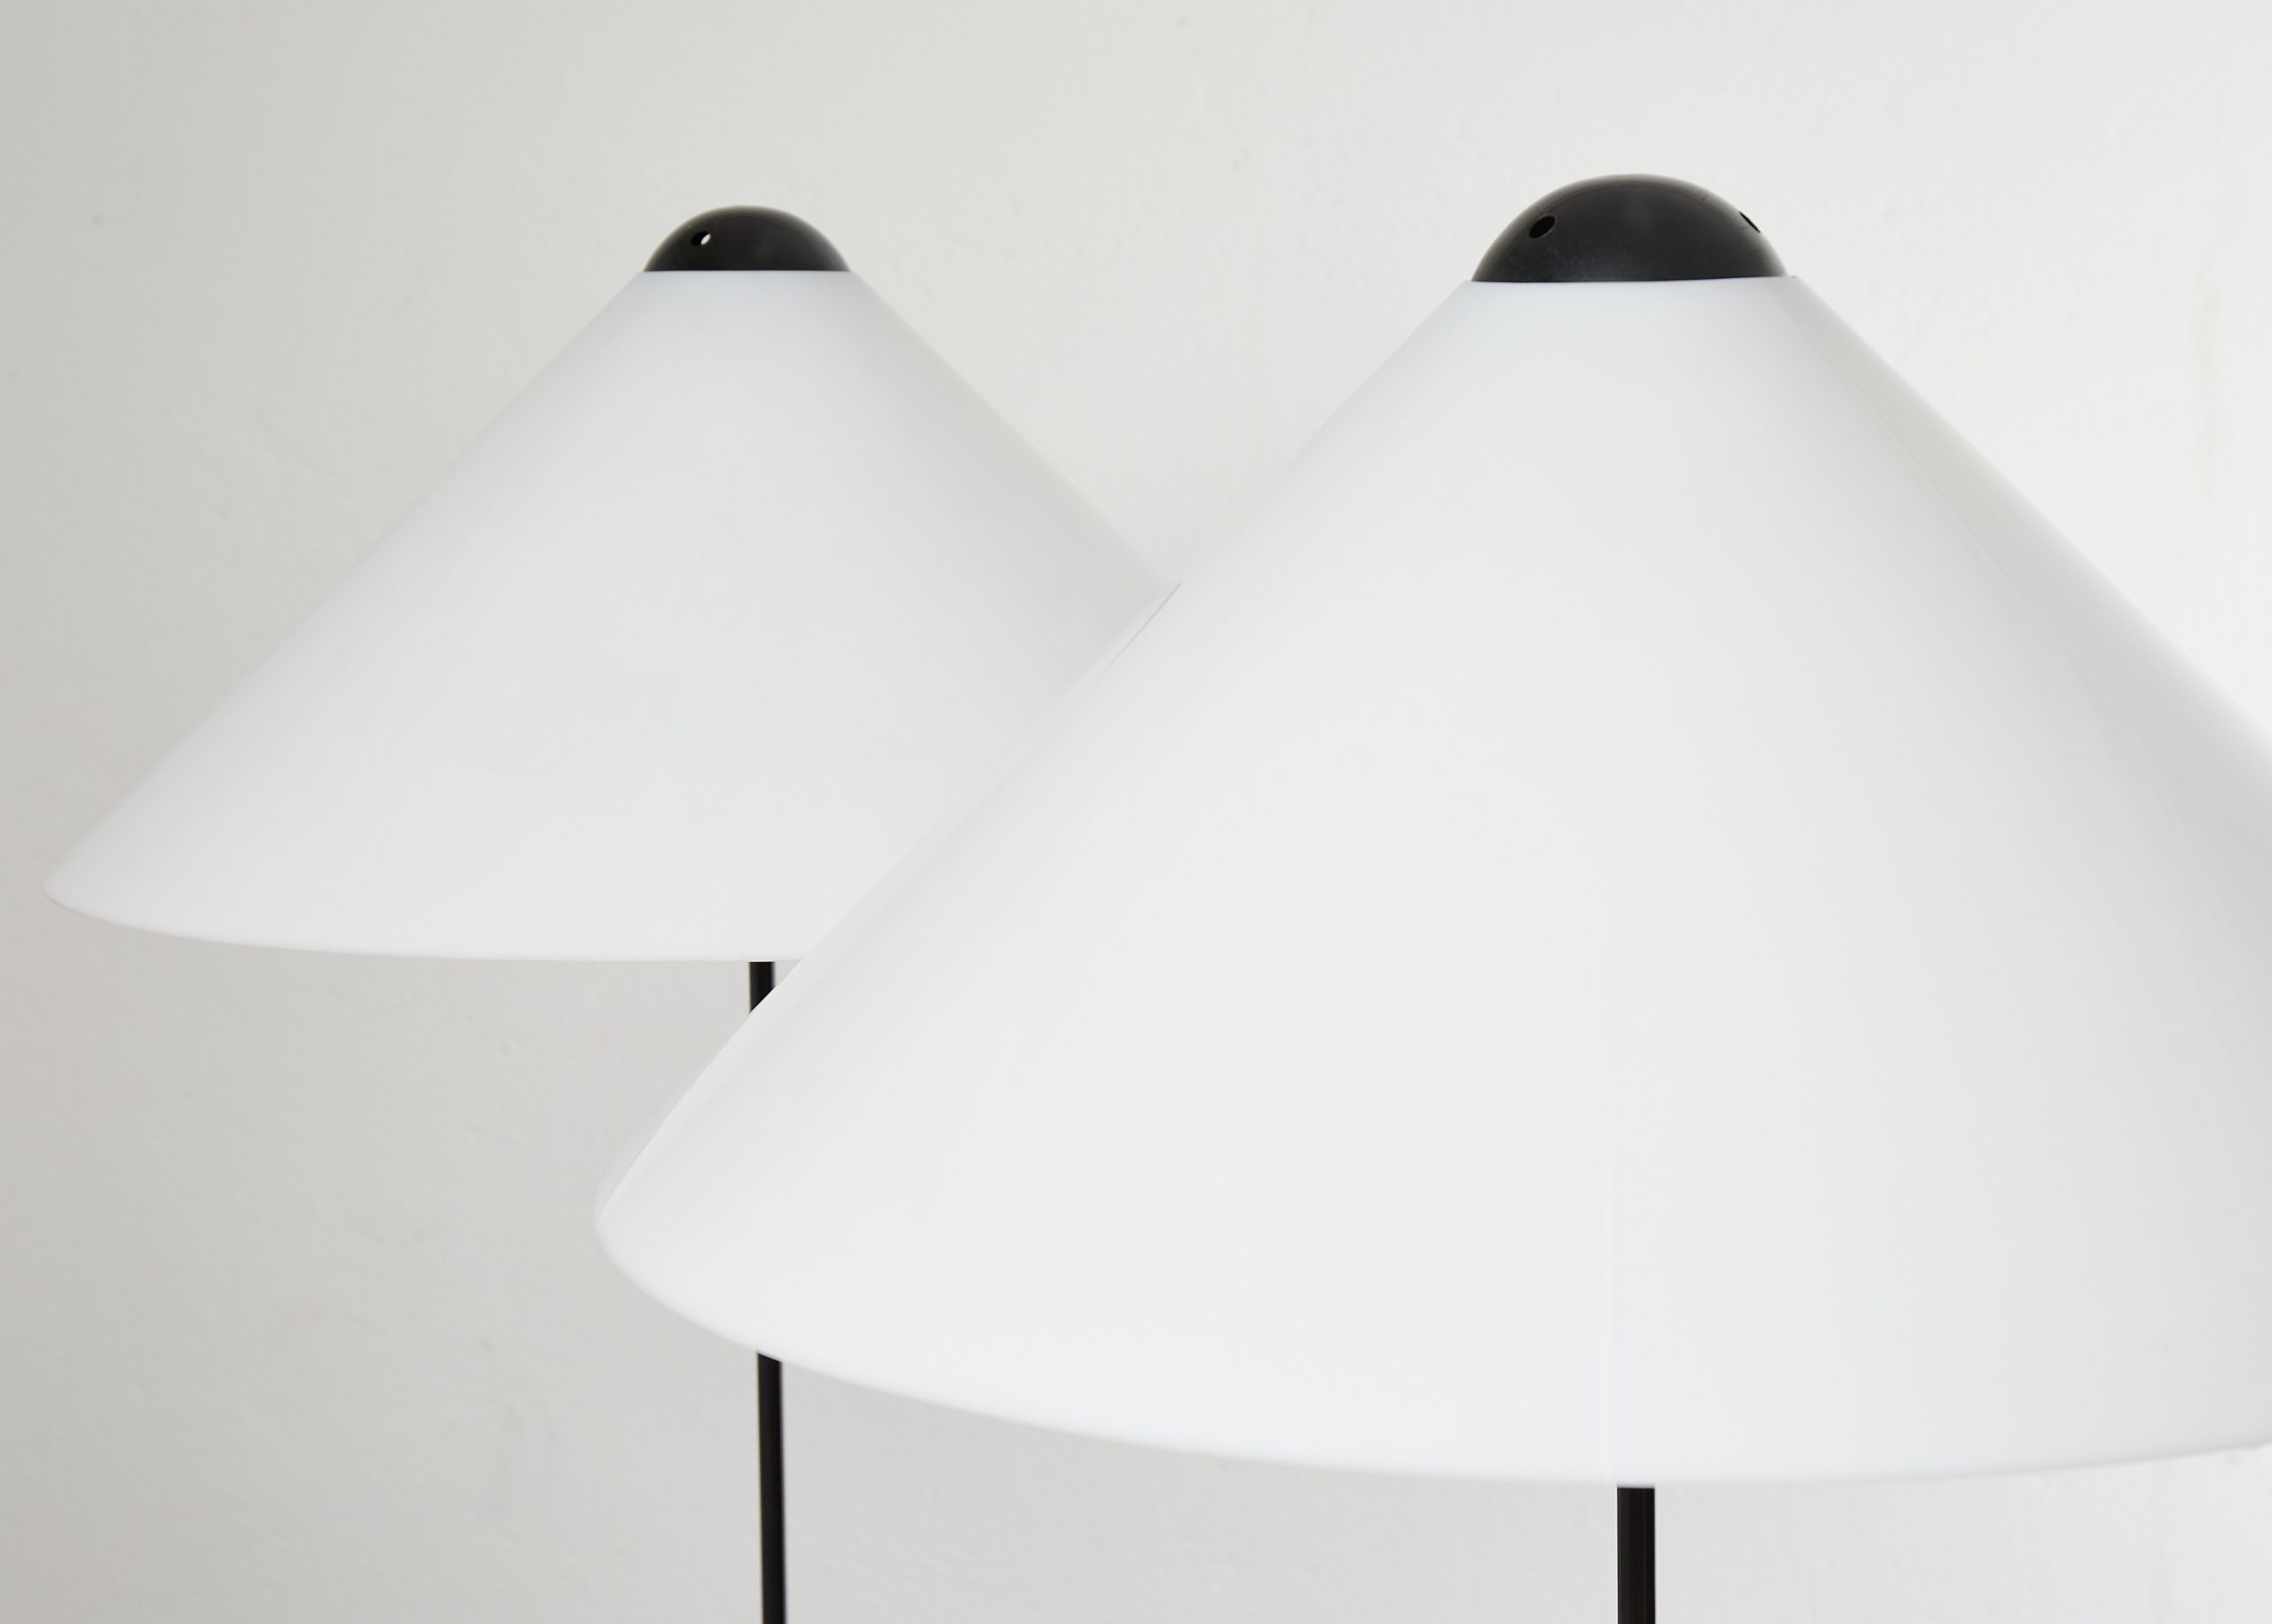 pair-of-snow-floor-lamps-by-vico-magistretti-oluce-1973-image-04